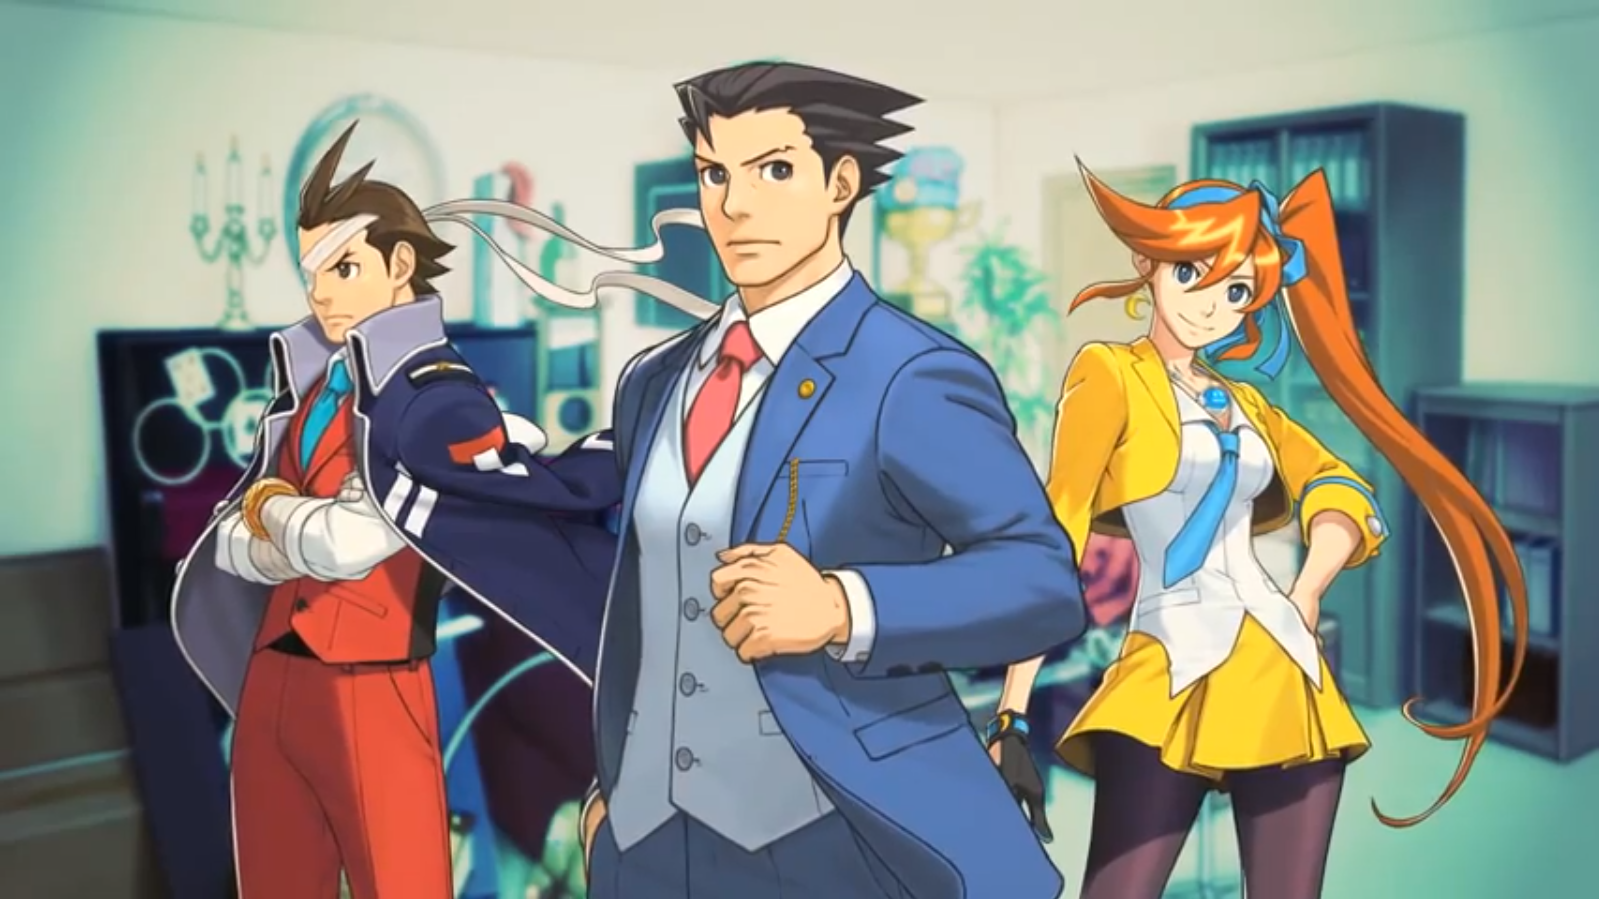 phoenix_wright_dual_destinies_characters